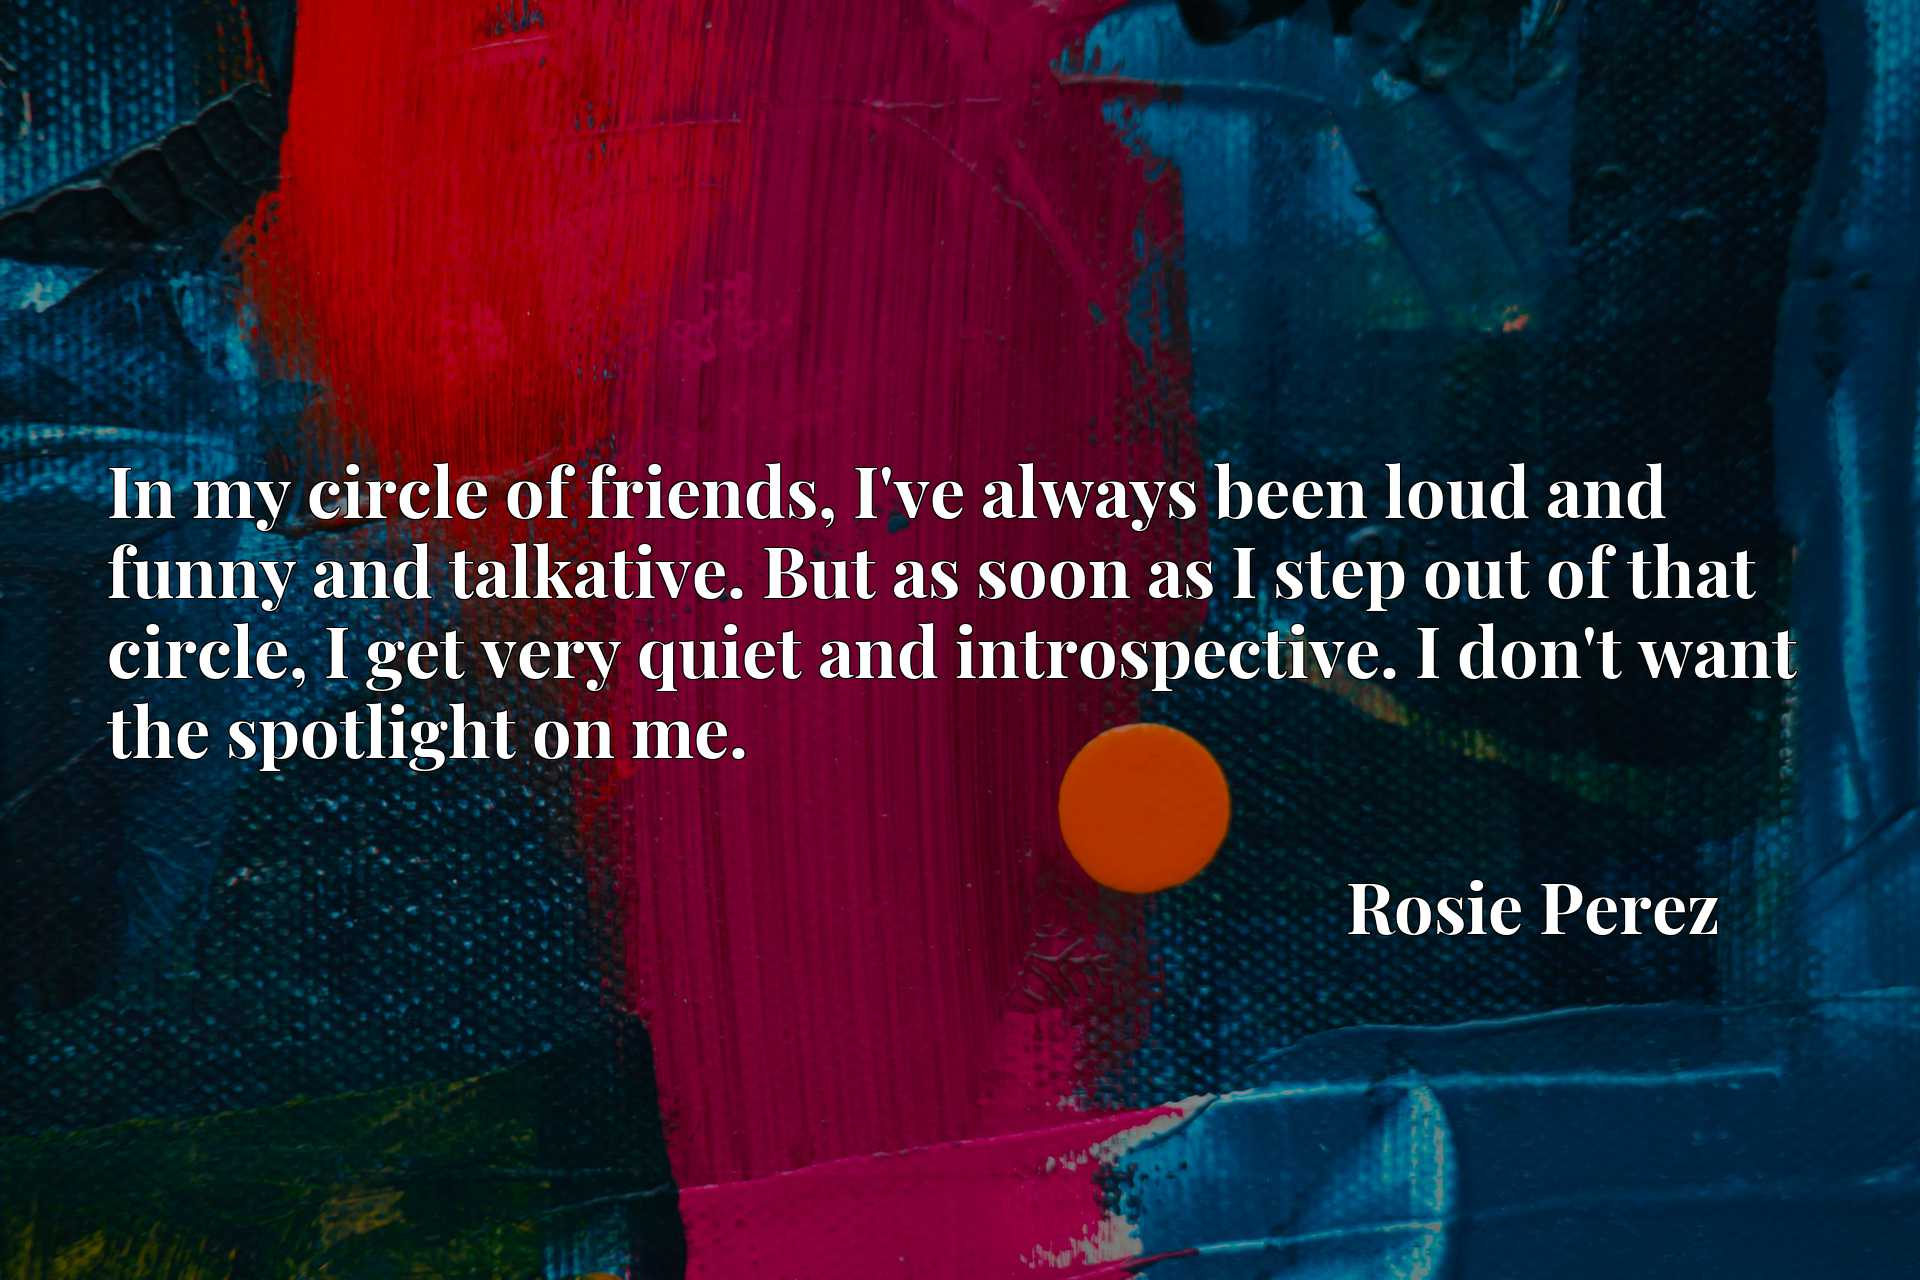 In my circle of friends, I've always been loud and funny and talkative. But as soon as I step out of that circle, I get very quiet and introspective. I don't want the spotlight on me.